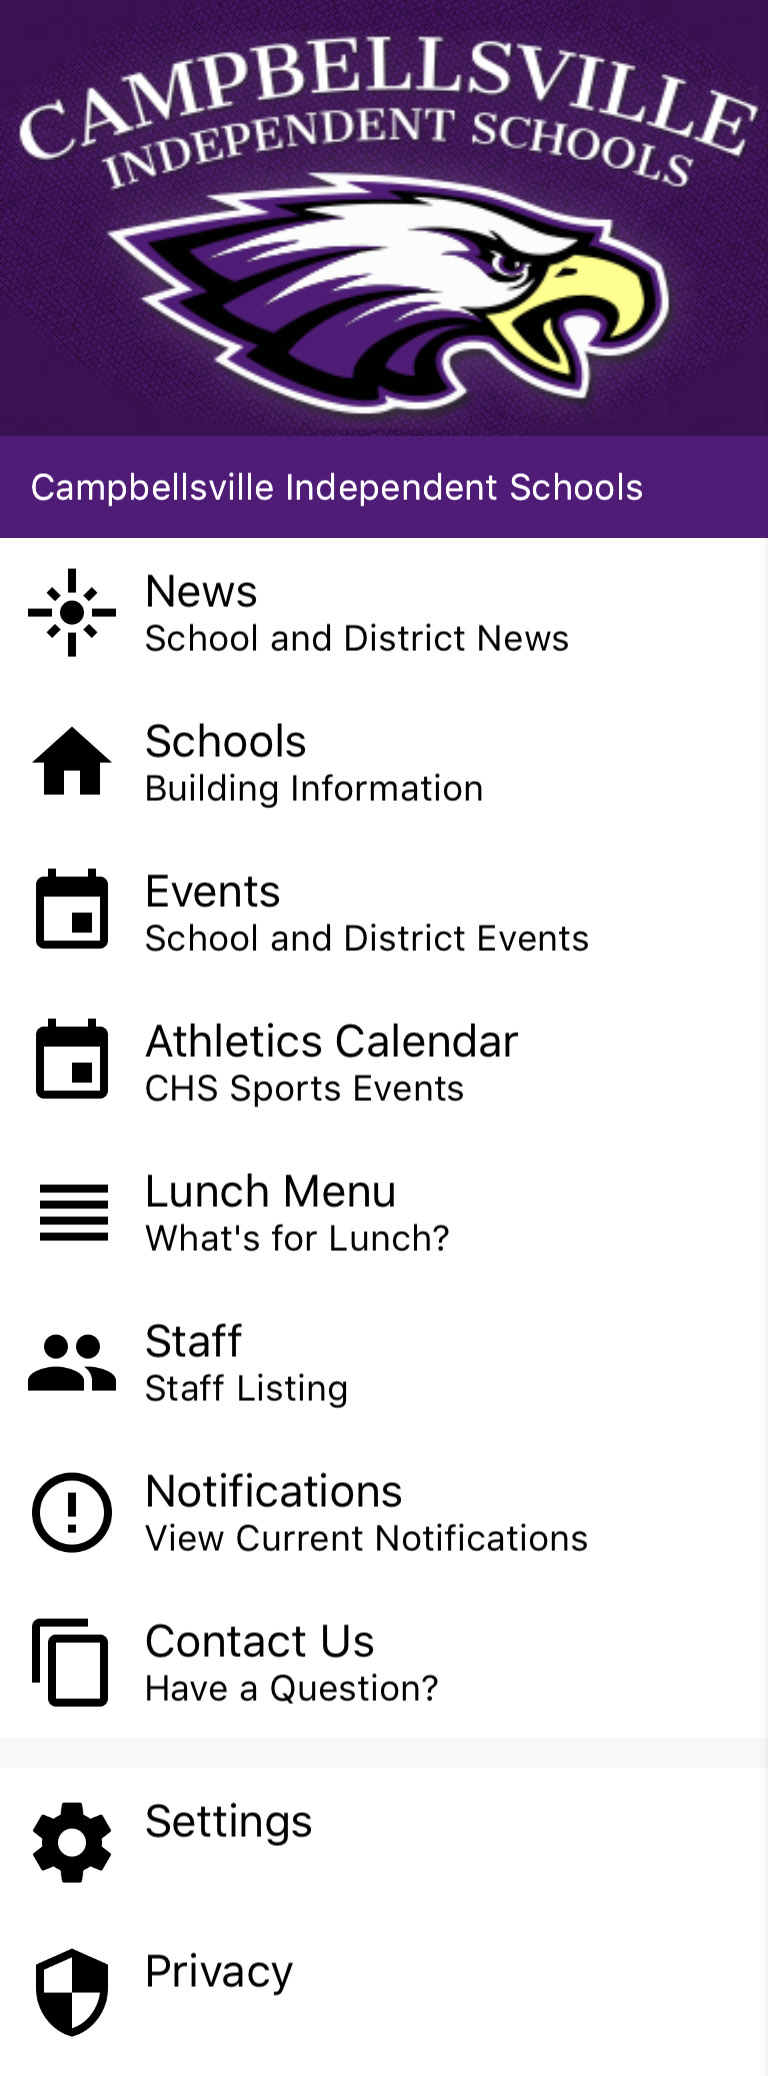 Campbellsville Independent Schools' free mobile app is available for download on all smartphones and tablets.